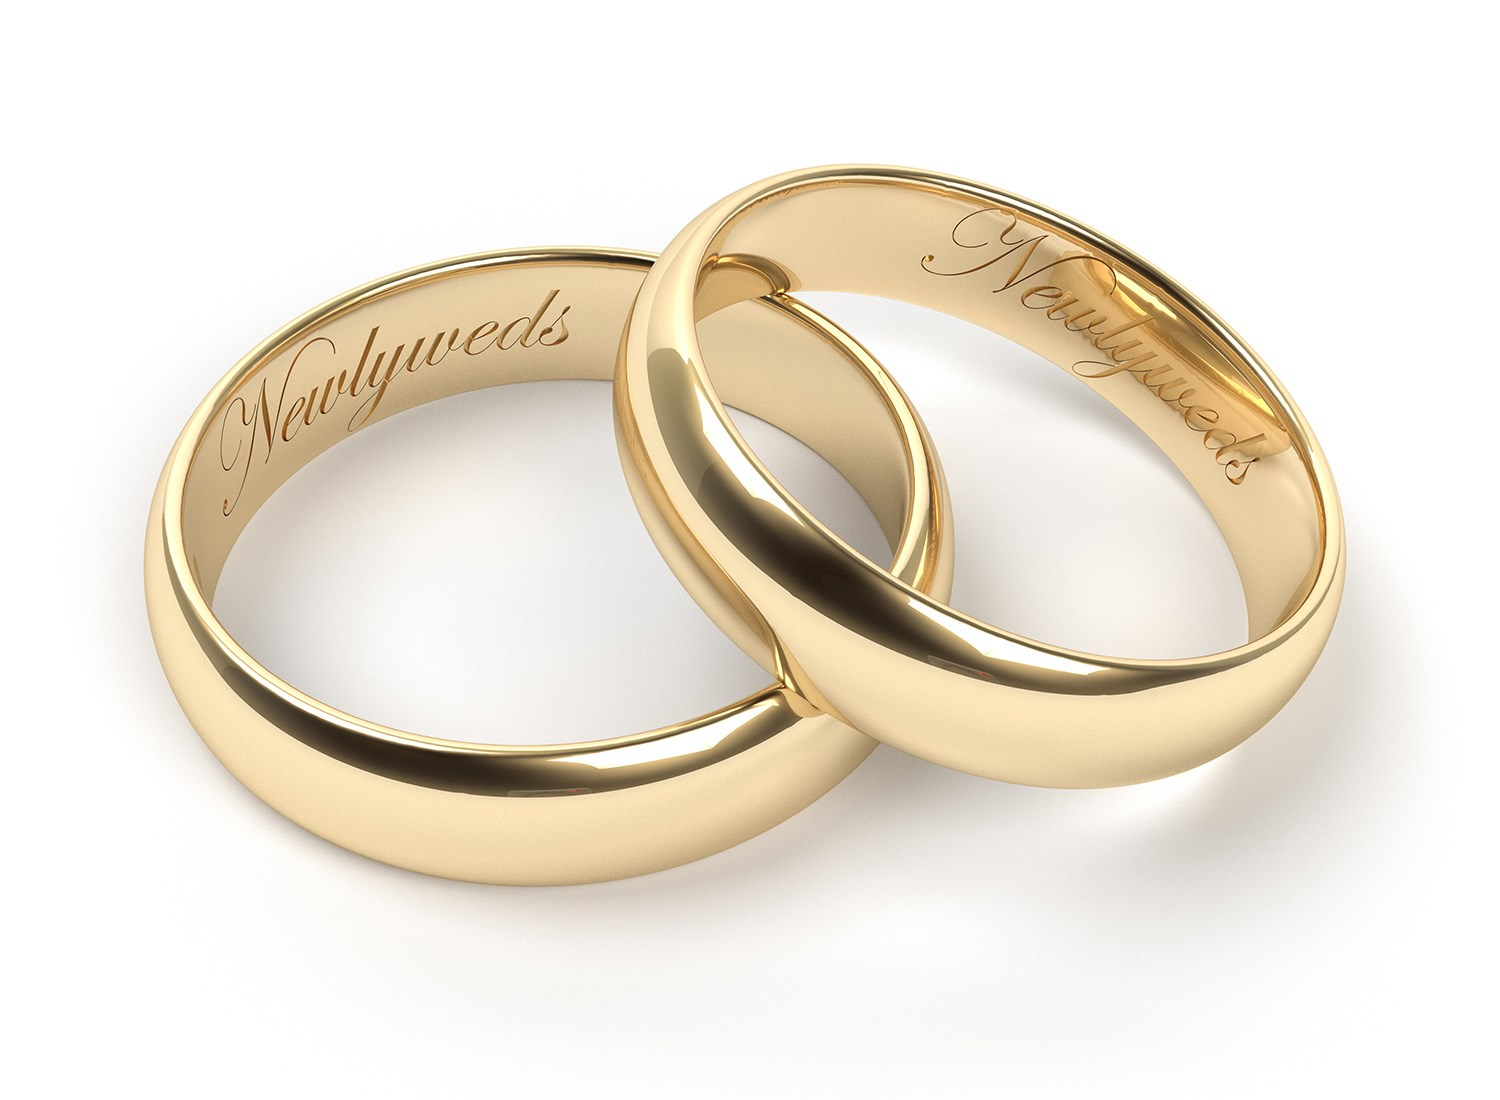 How to Choose the Perfect Wedding Ring Inscription